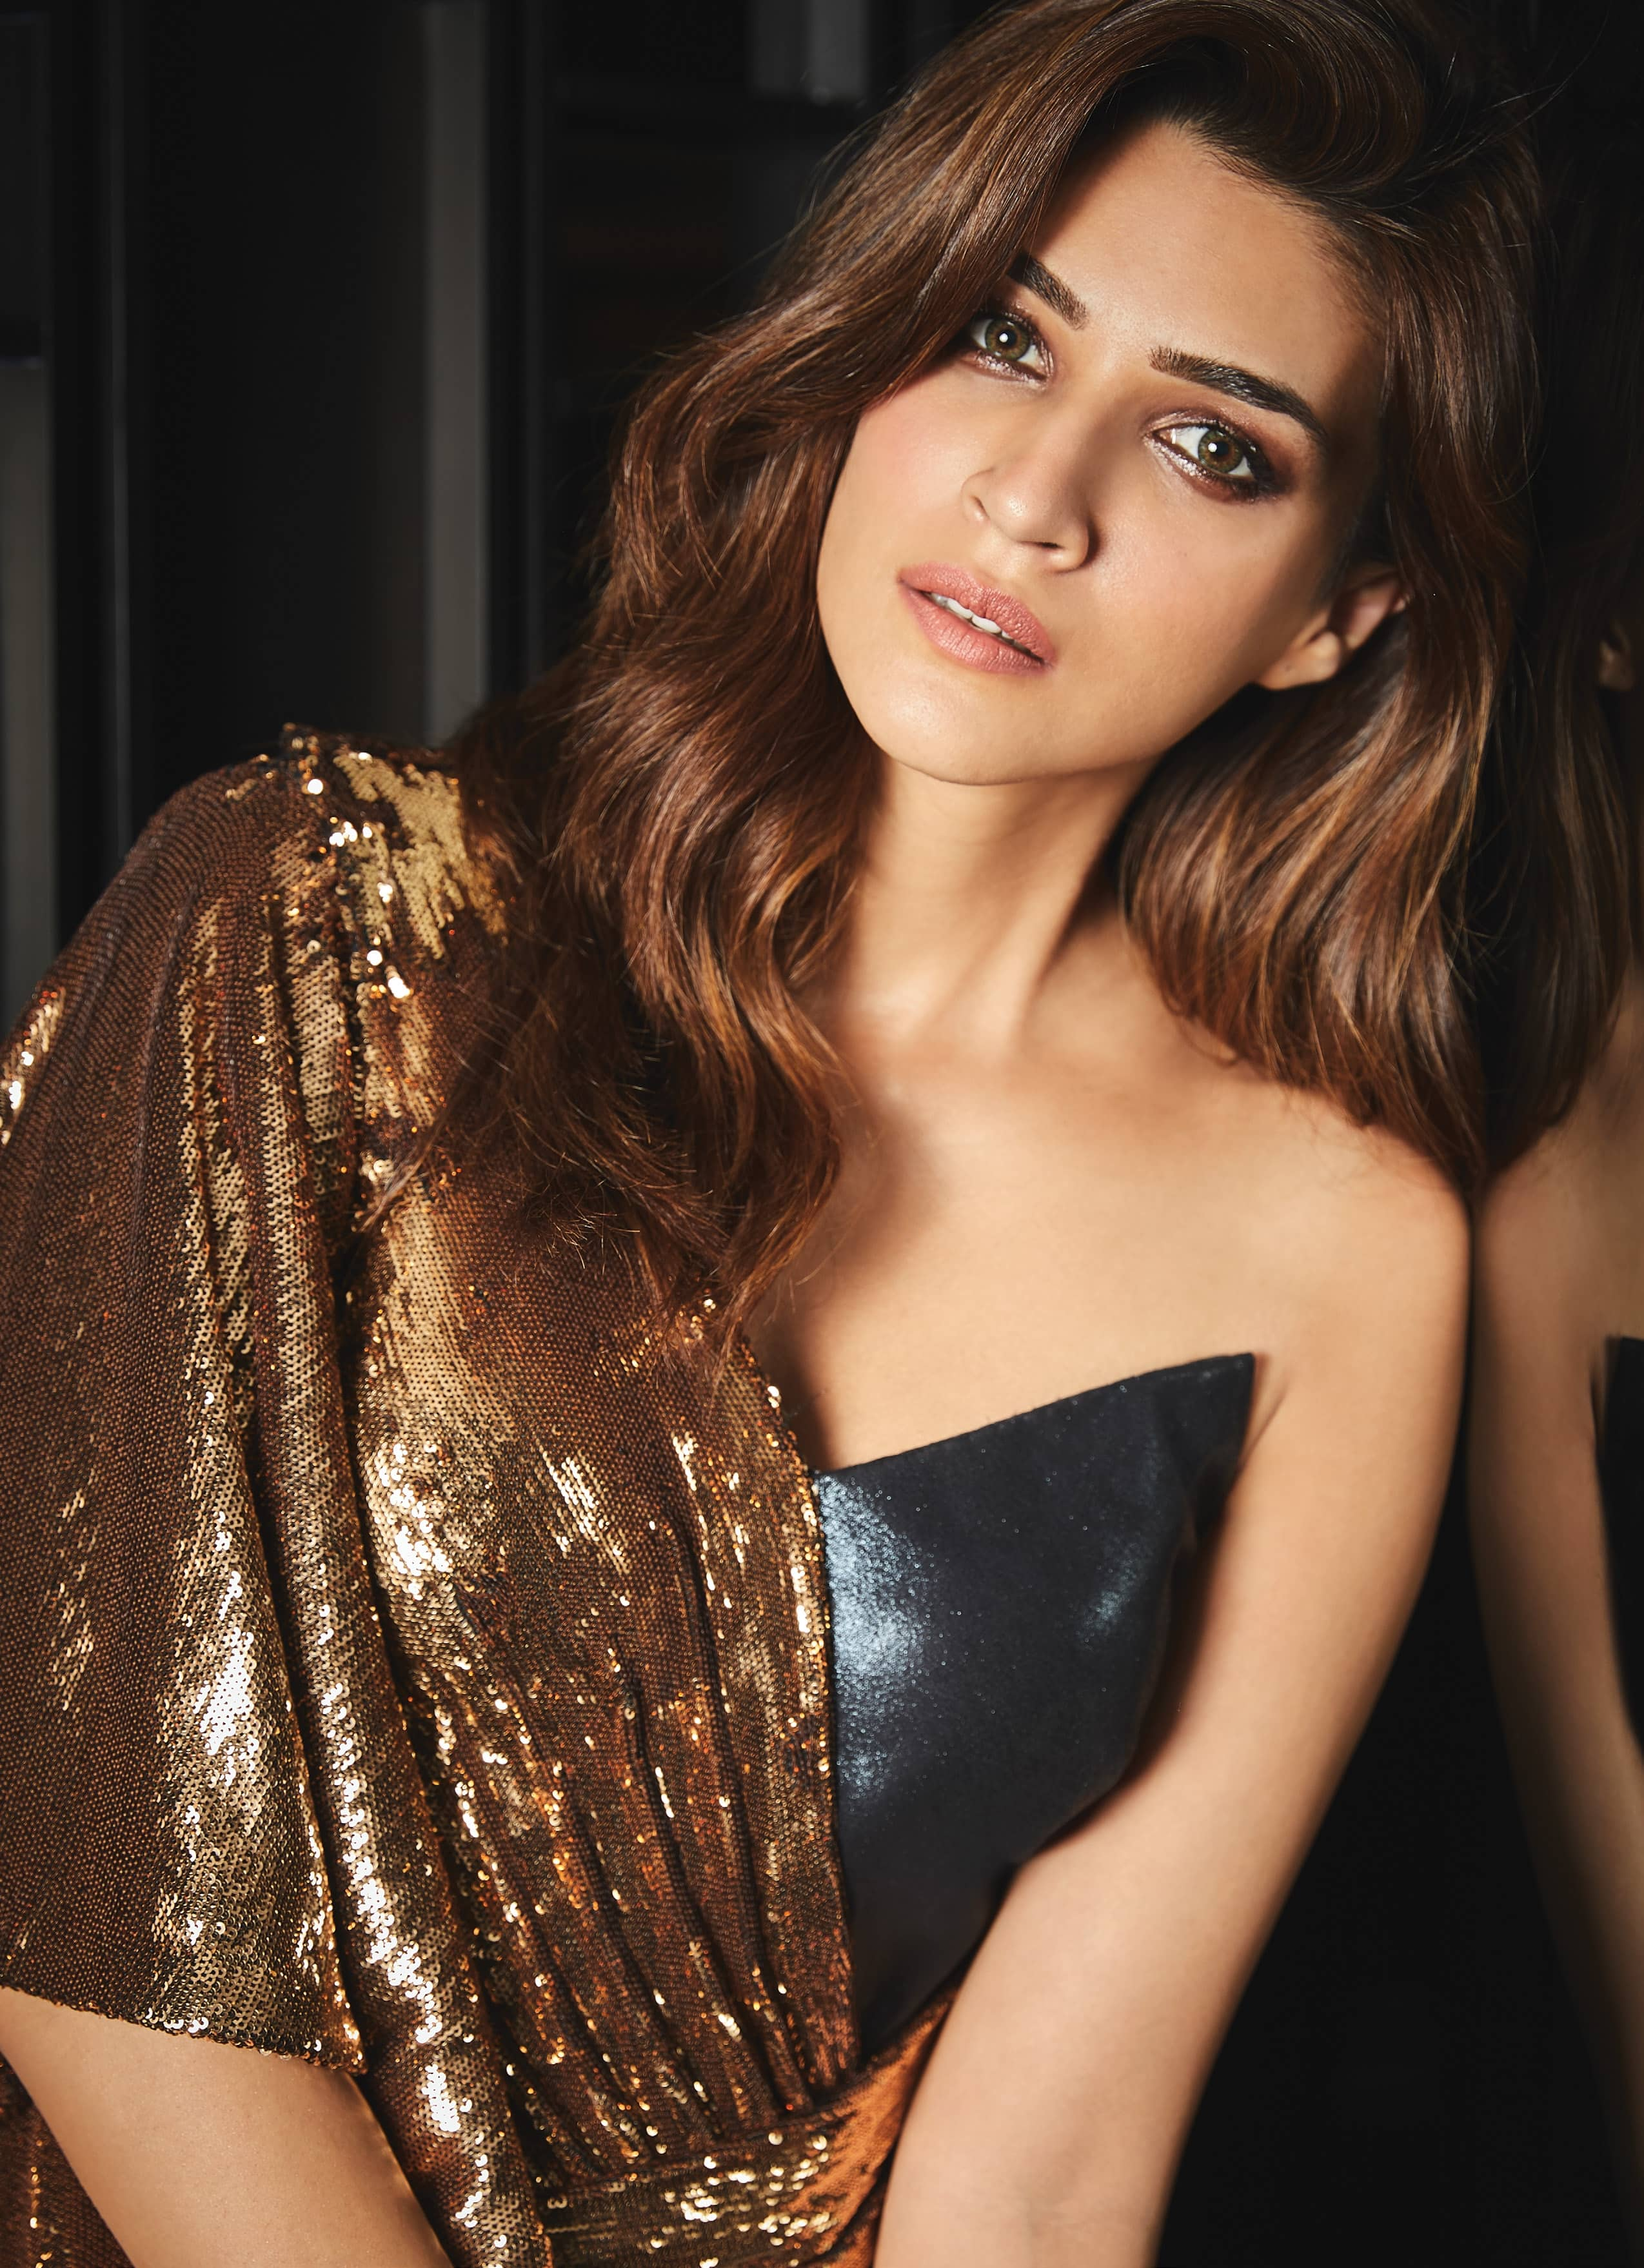 IT ONLY GETS BETTER! THE YEAR OF KRITI SANON